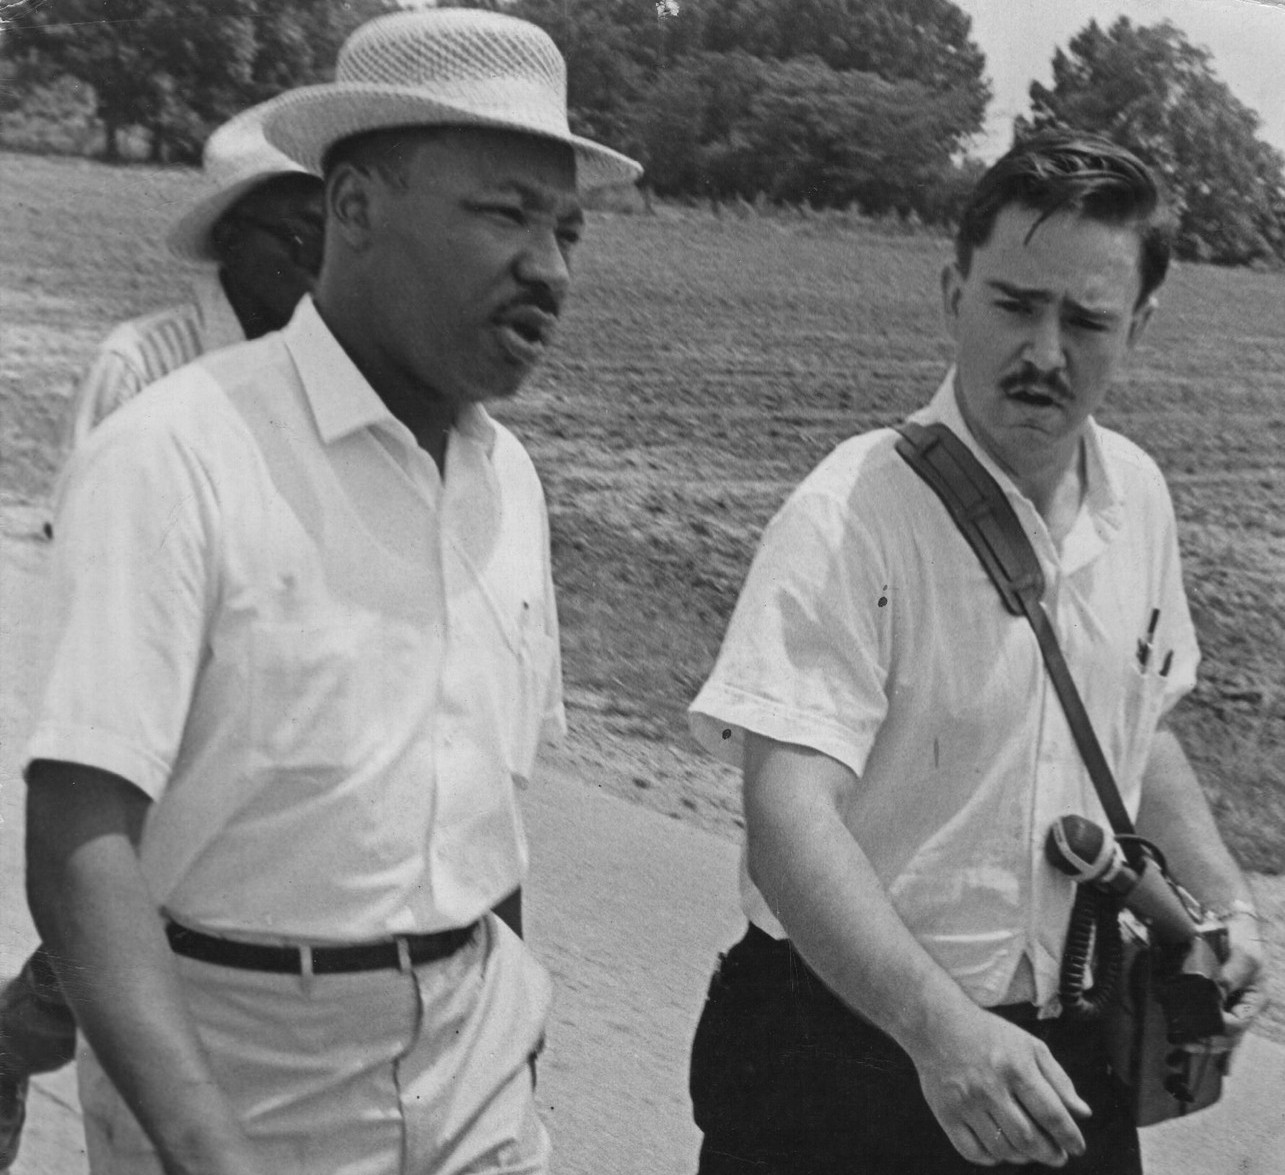 Herdenking 50e sterfdag Martin Luther King